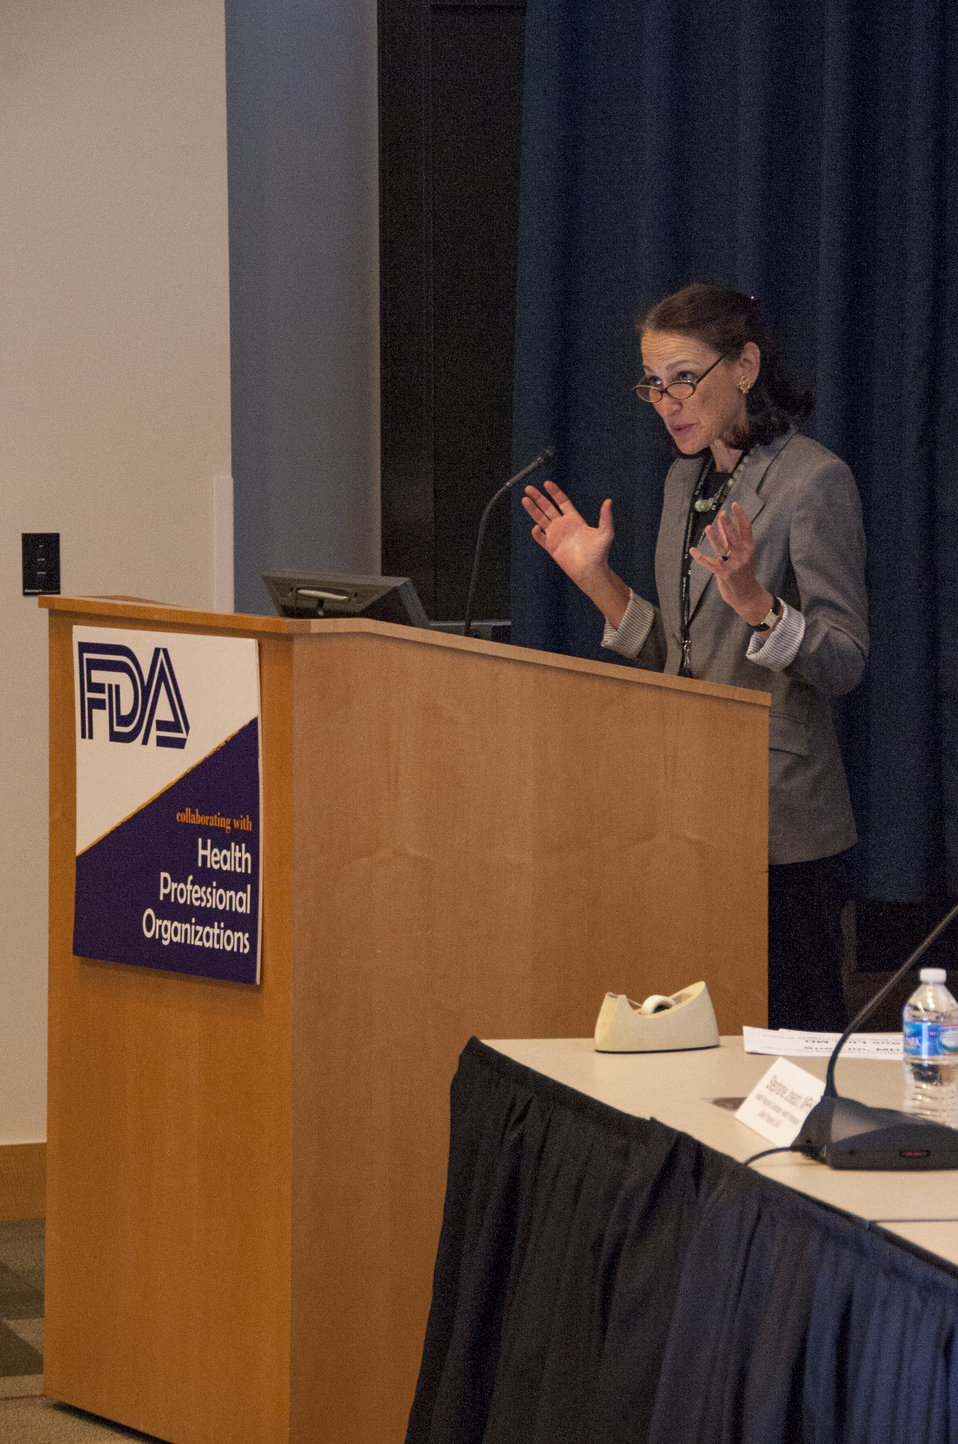 FDA's 2014 Health Professional Organizations Conference (1034)